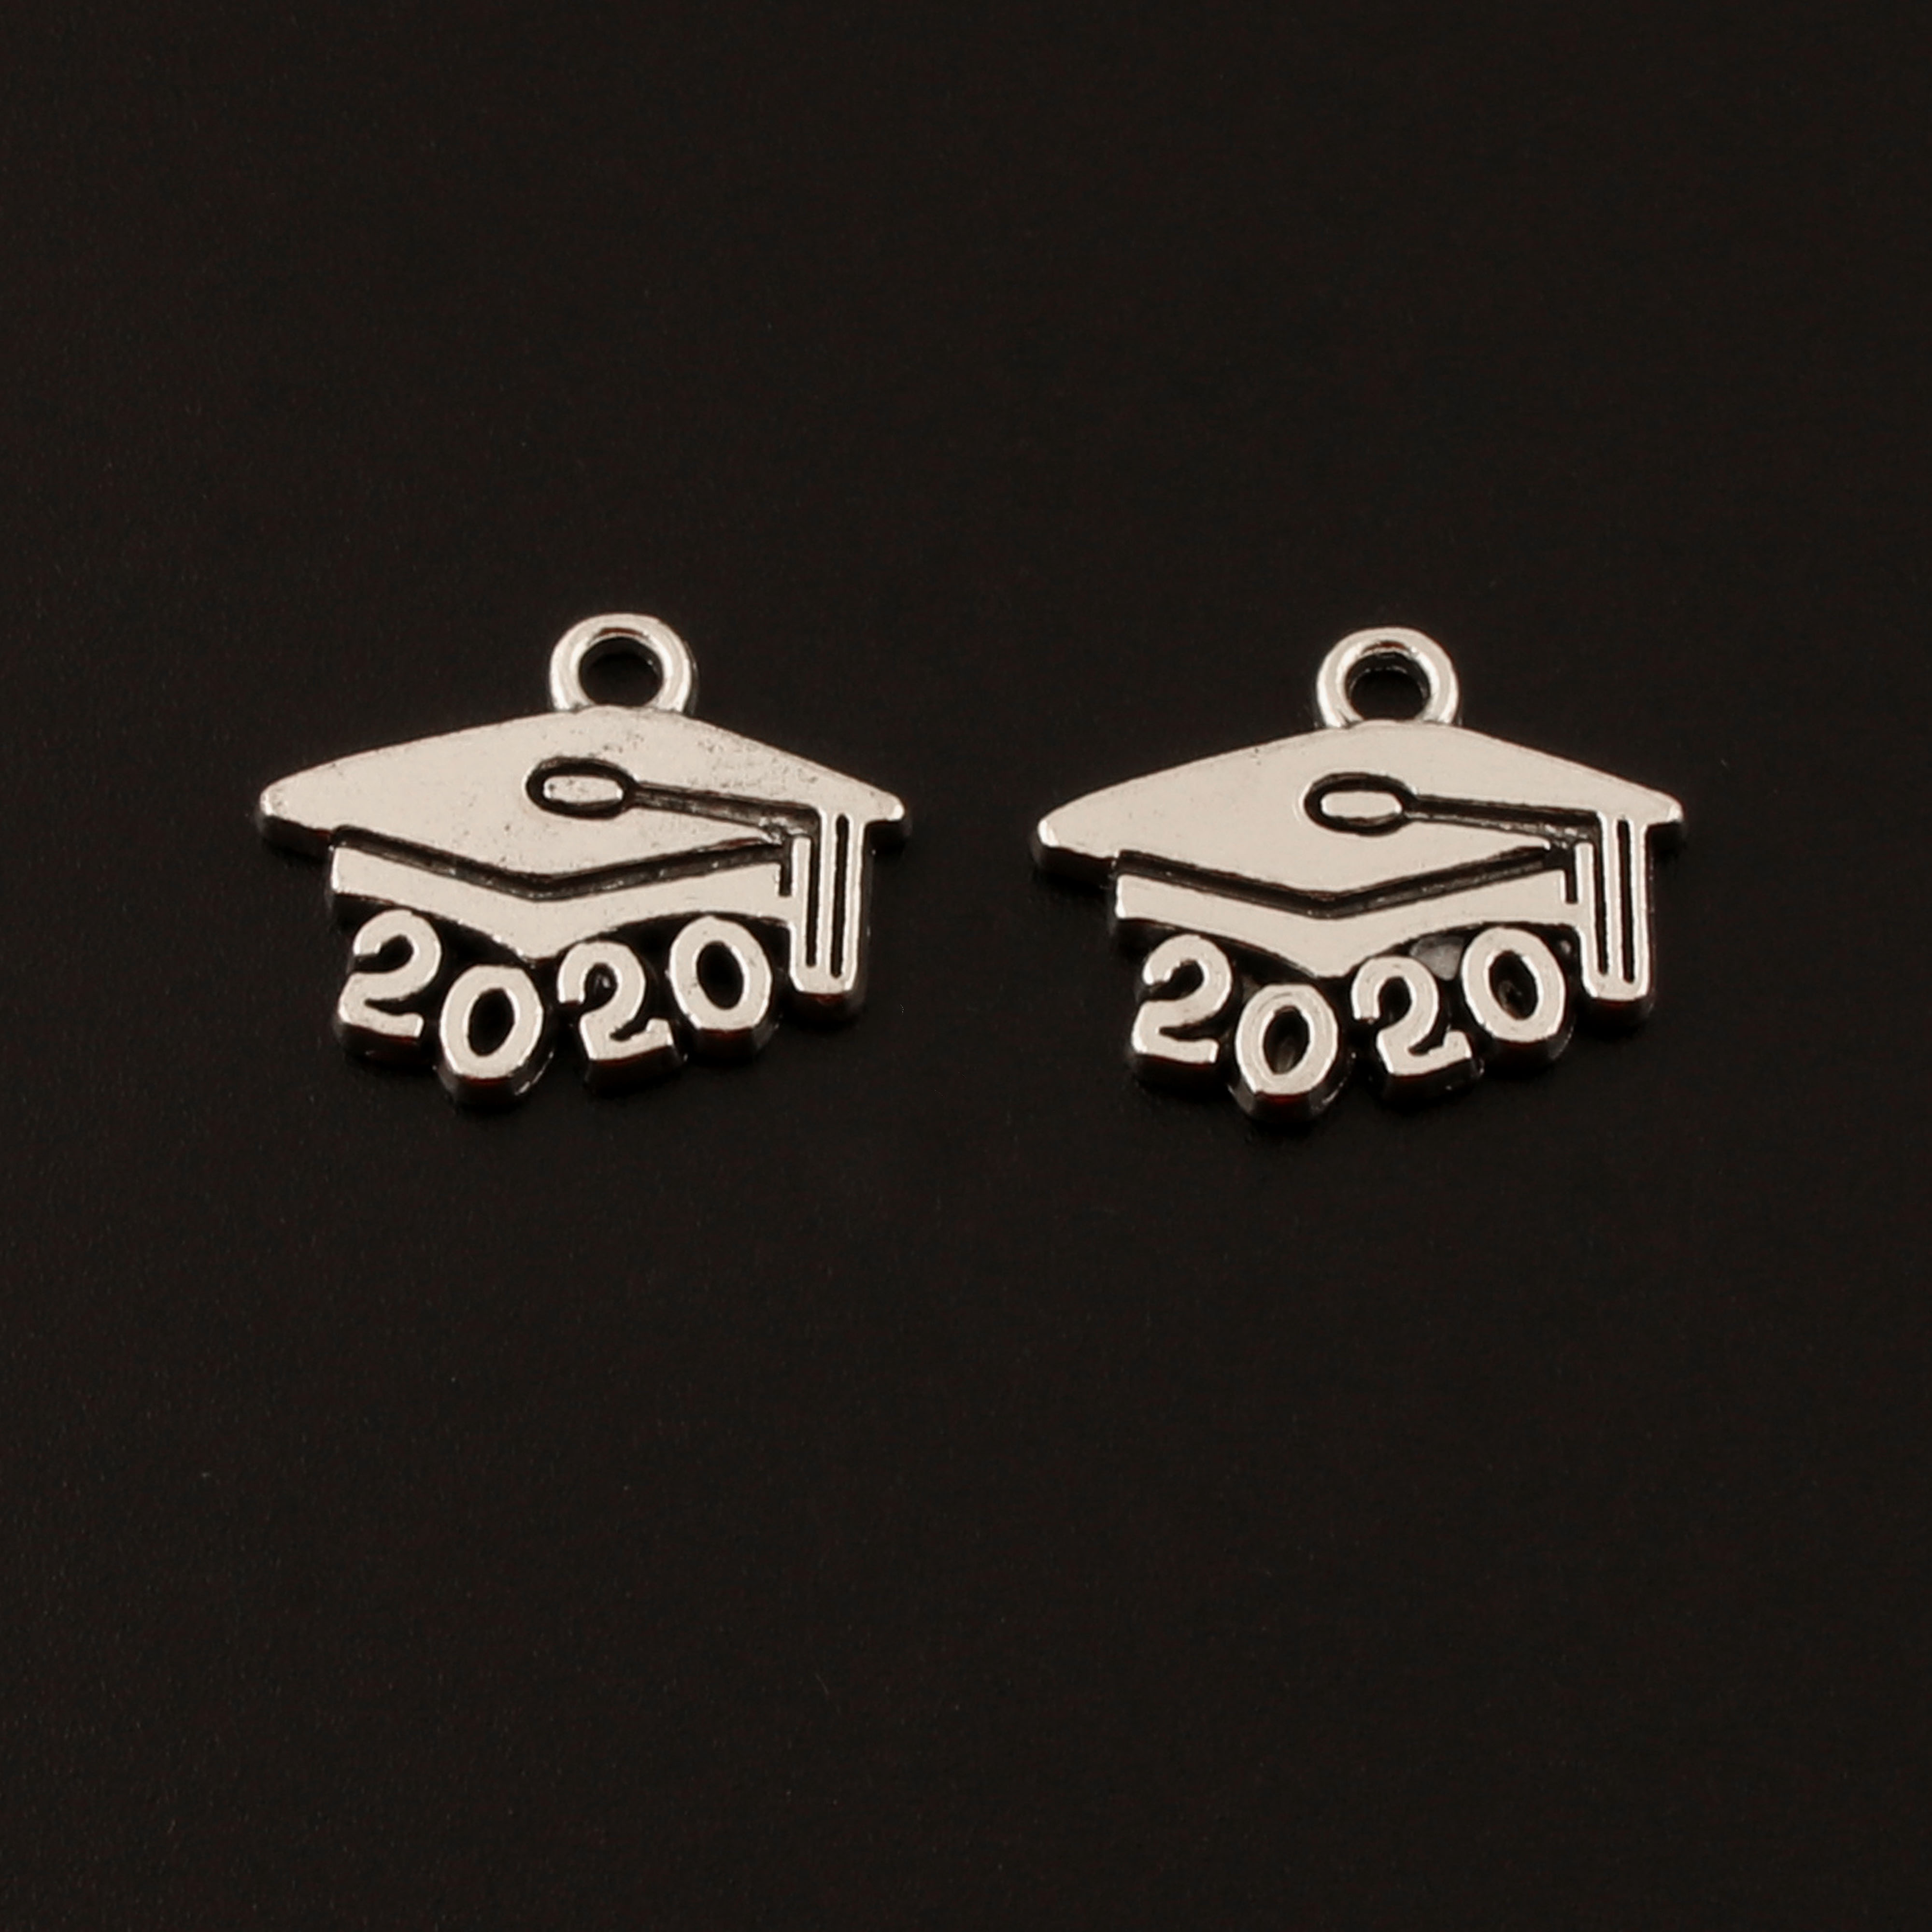 50pcs year 2018 Charms Silver tone 2018 charm pendant 9x13mm